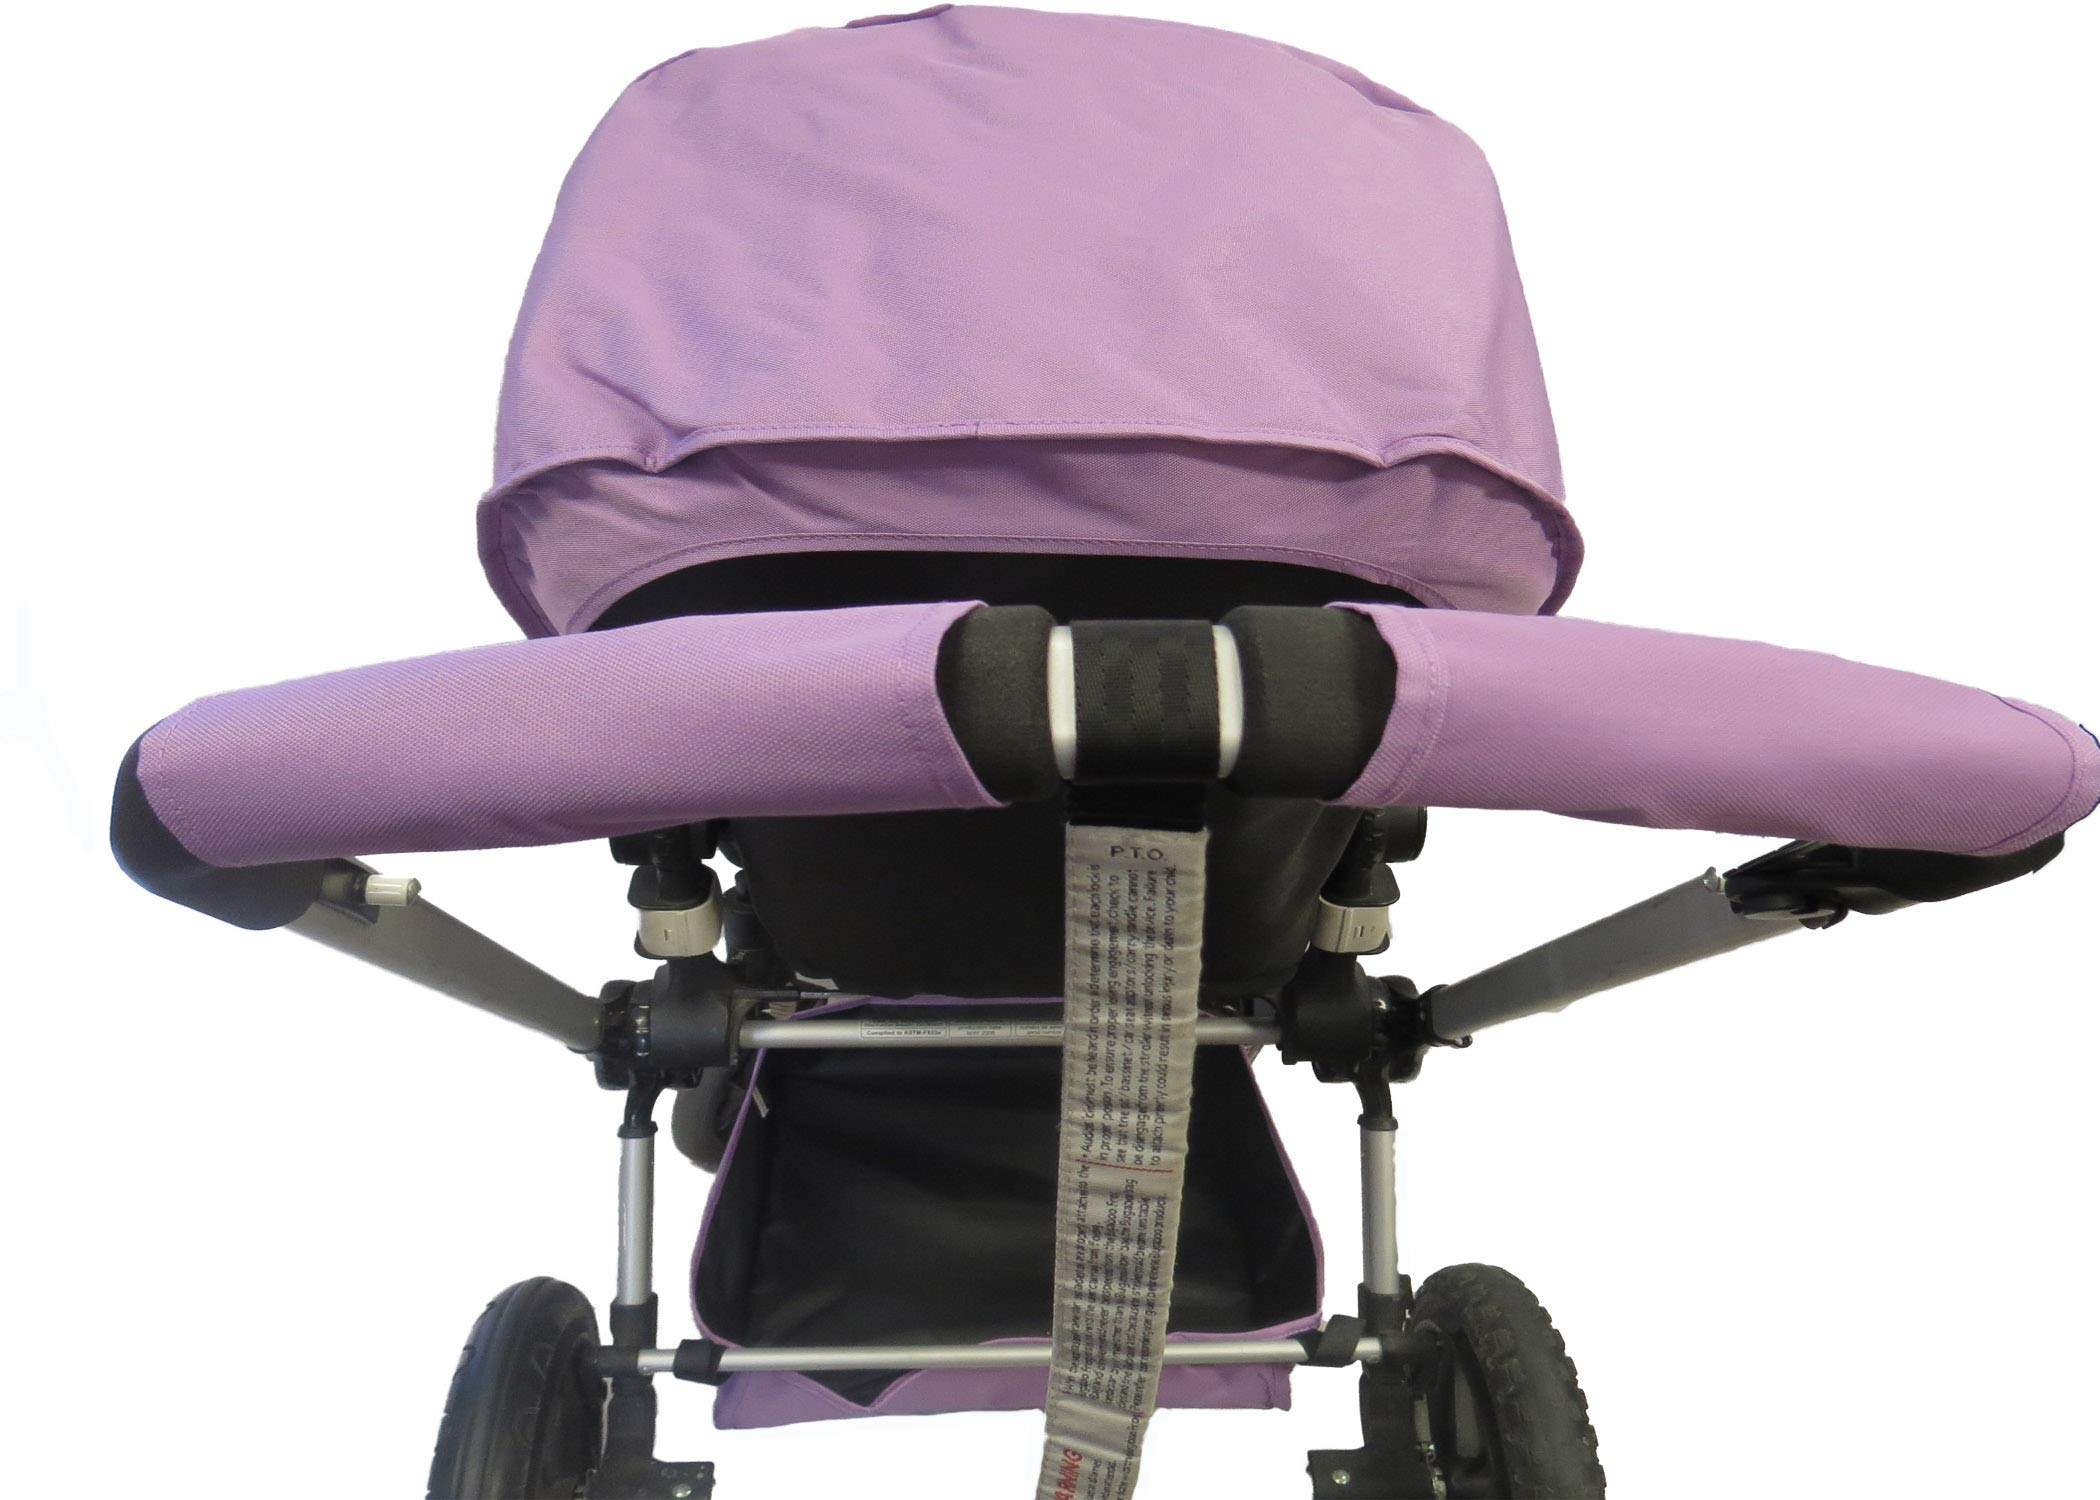 Light Purple Sun Shade Canopy with Wires and Under Seat Storage Basket Plus Free Handle Bar Covers for Bugaboo Cameleon 1, 2, 3, Frog Baby Child Strollers by Ponini (Image #3)